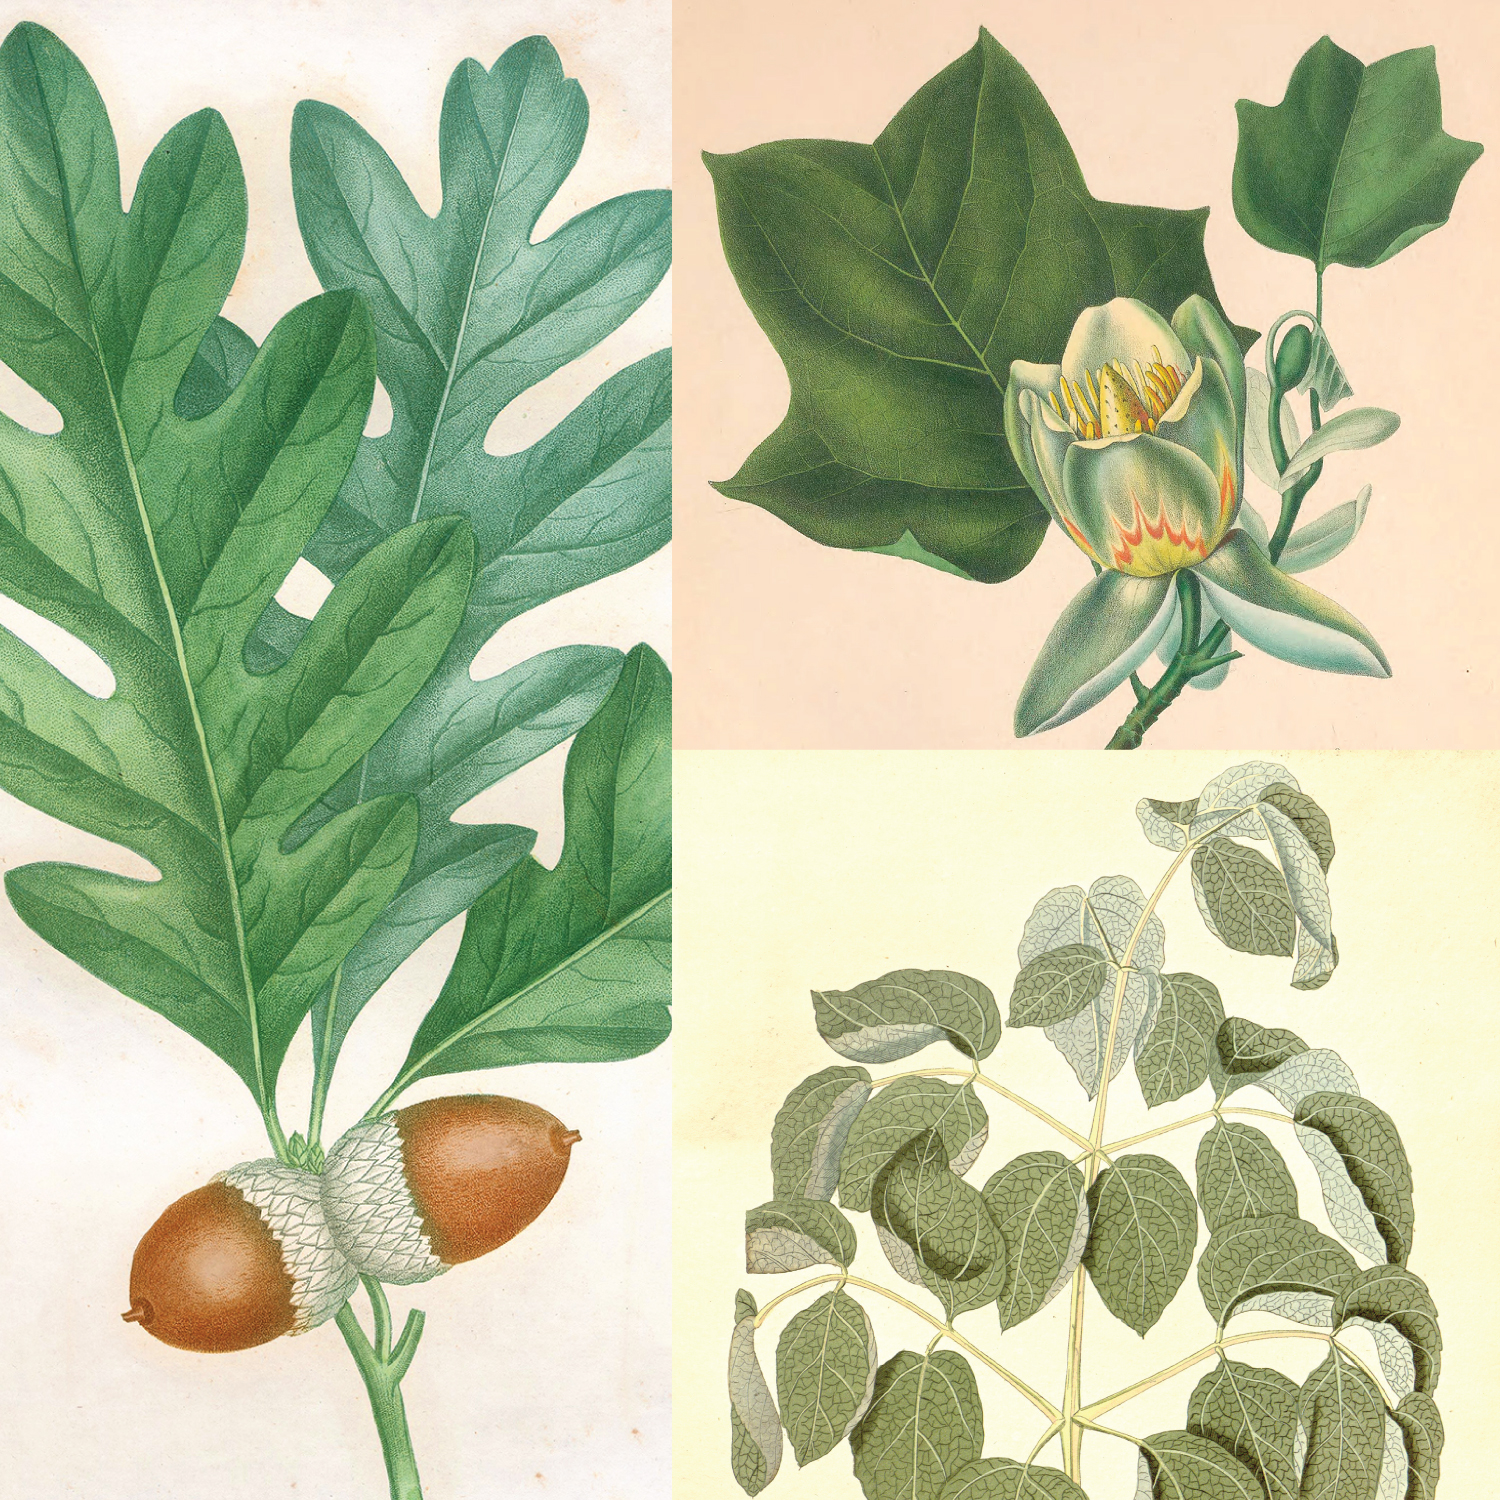 spotlight_civil war botanical collage-01.jpg